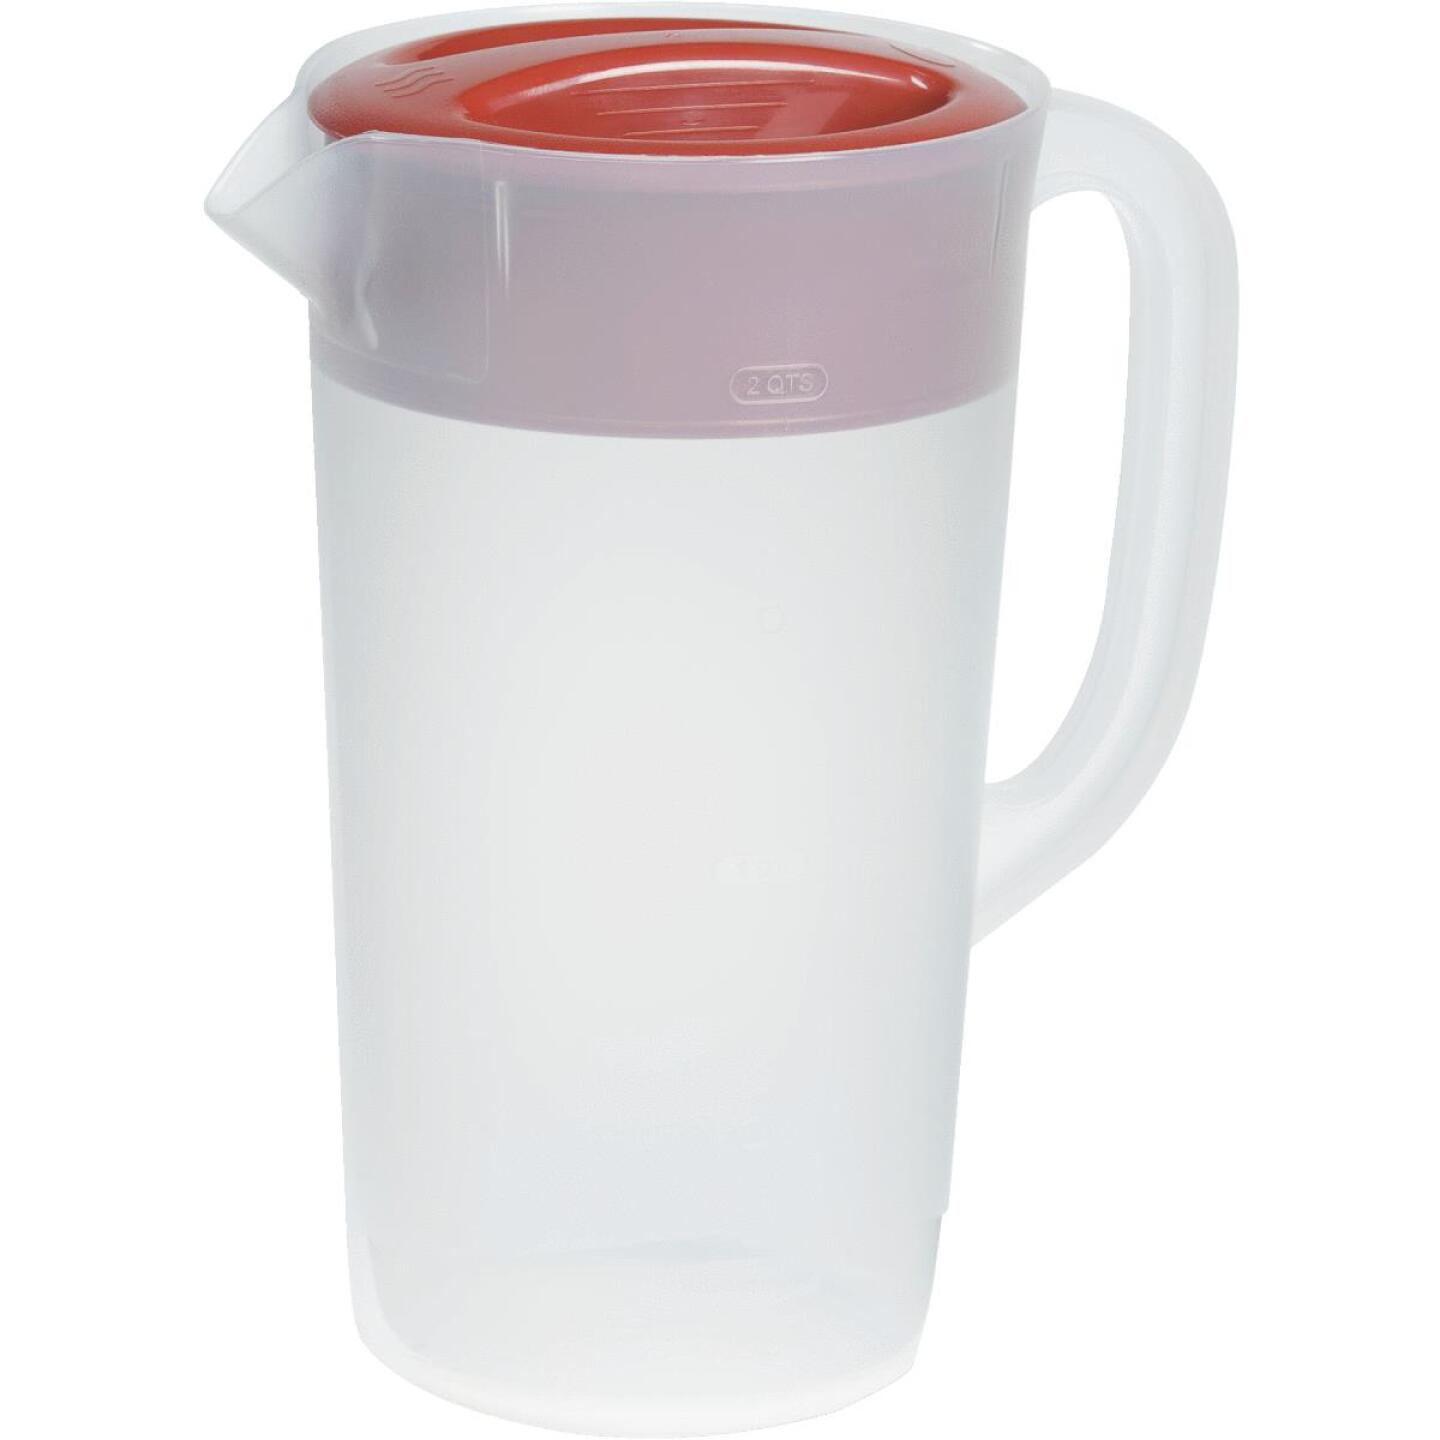 Rubbermaid Frosted Plastic Pitcher with Red Lid, 2.25 Qt. Image 1